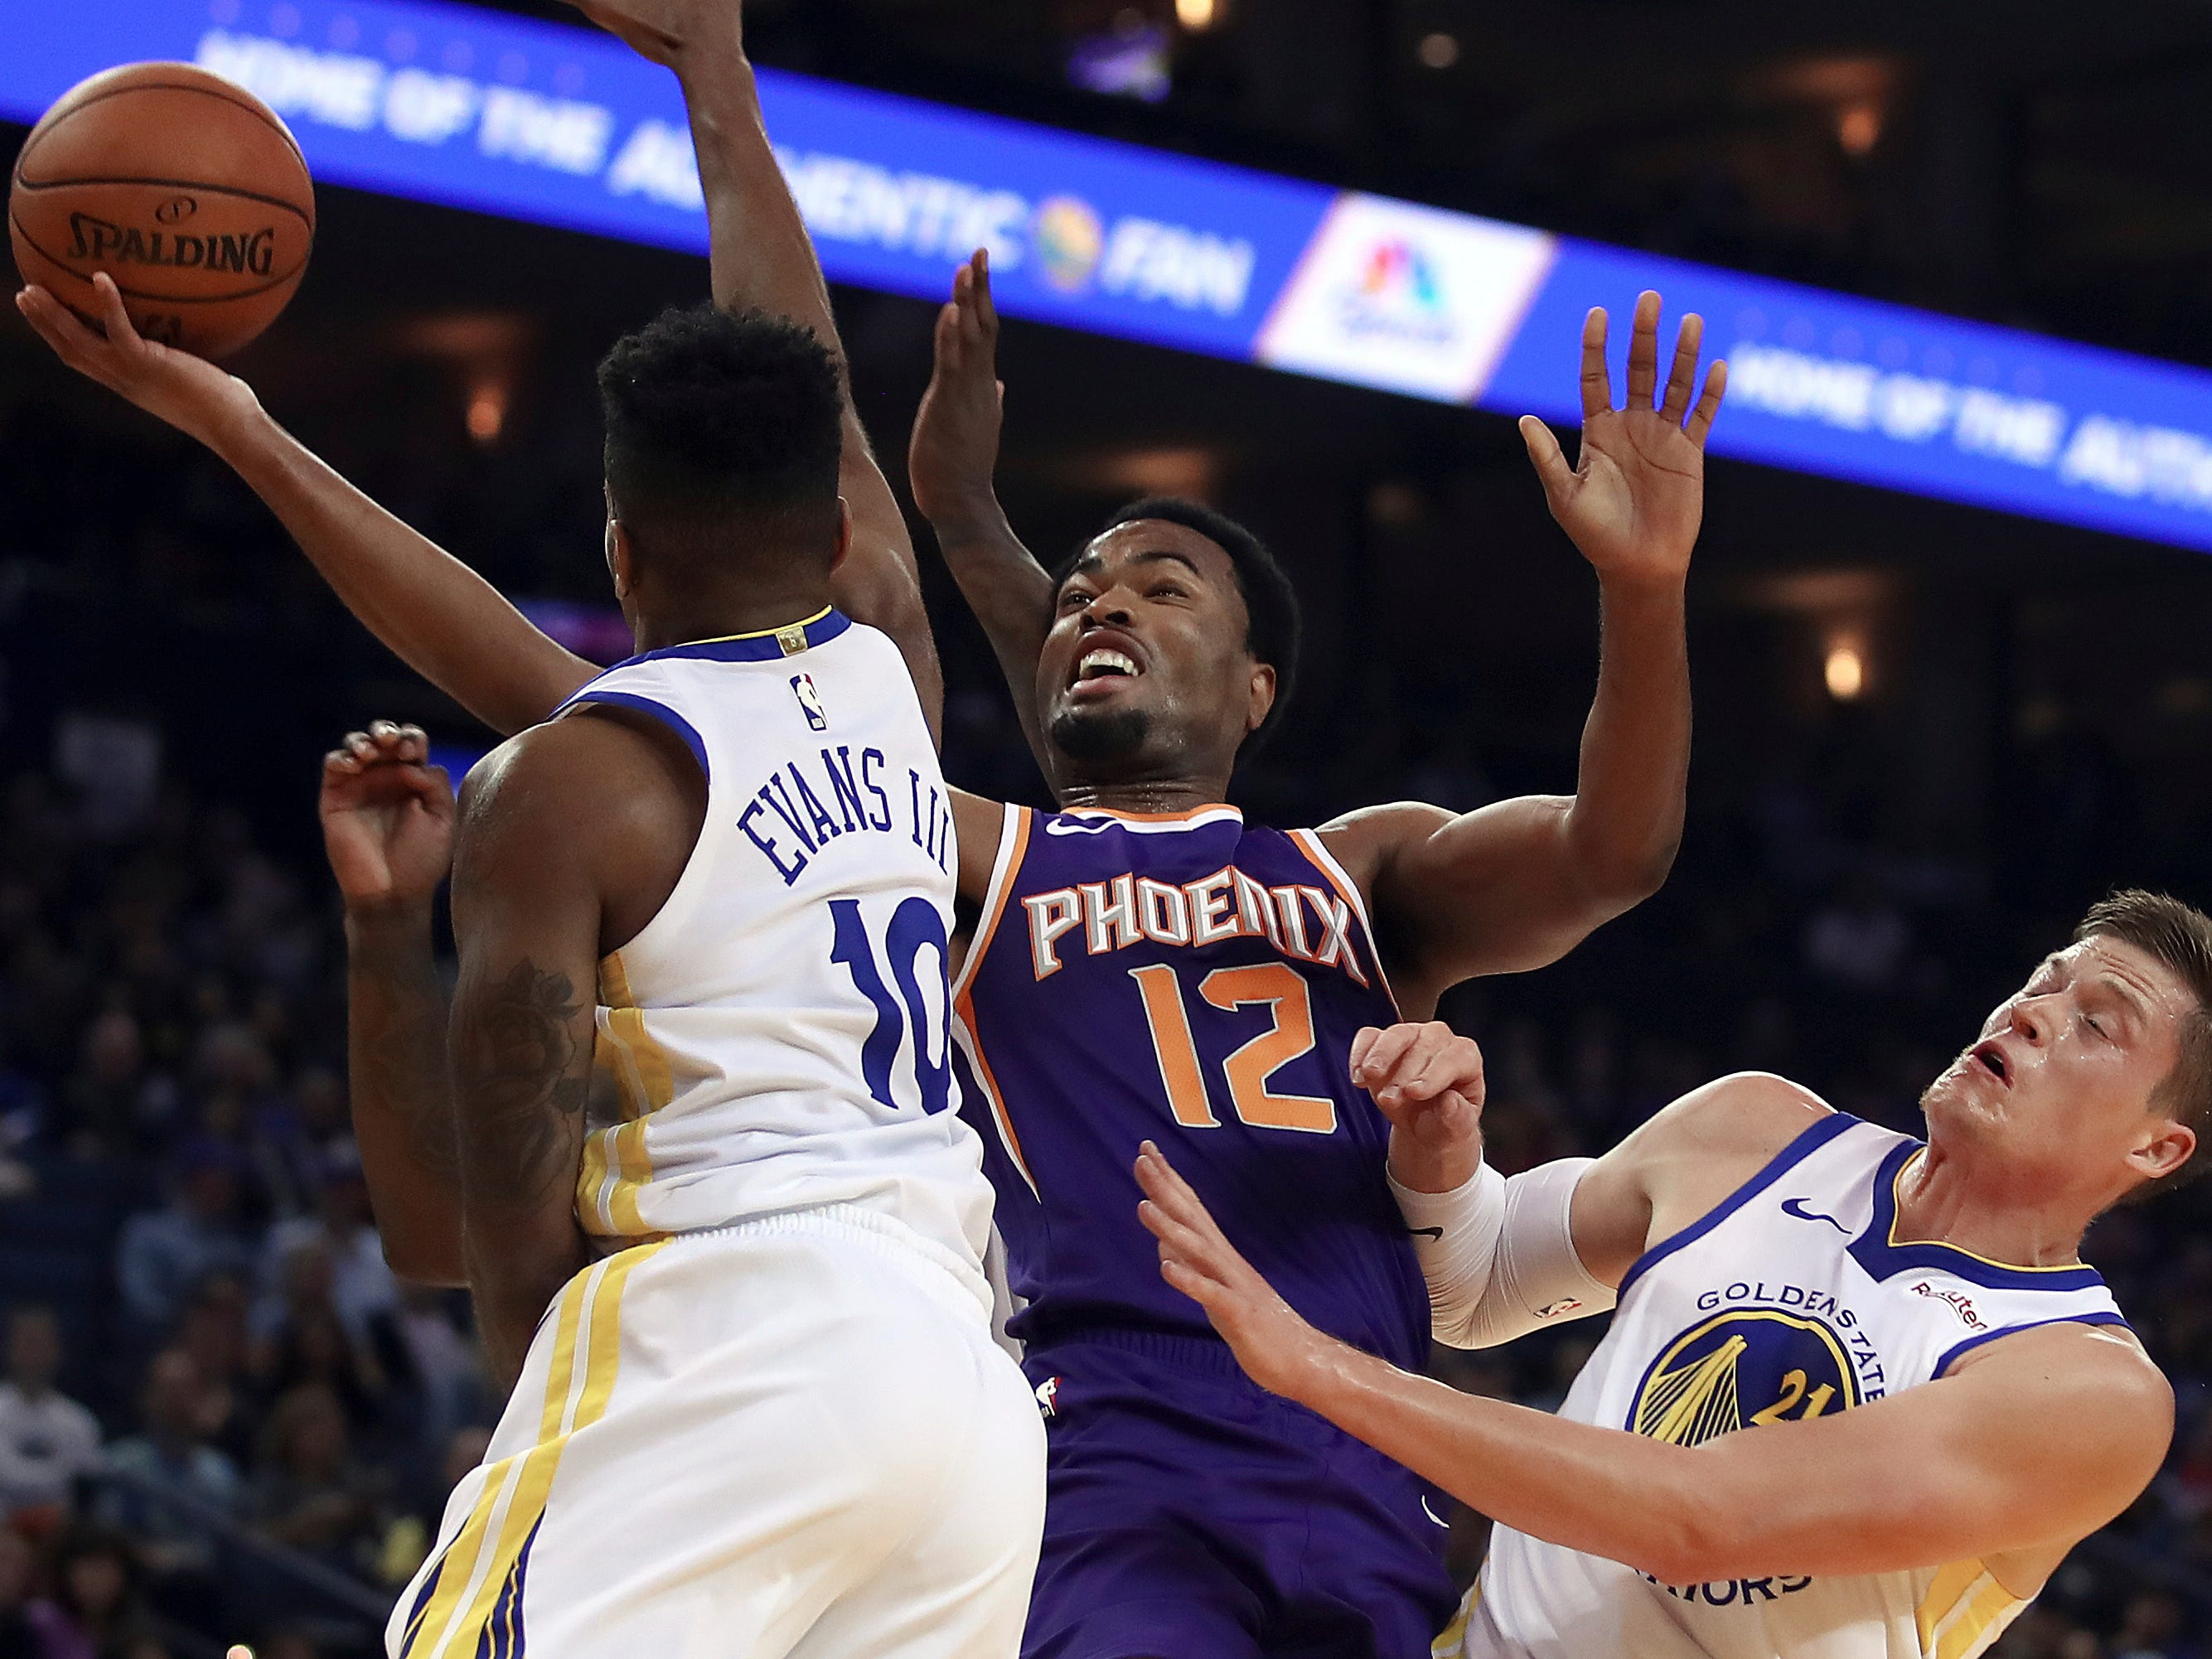 Phoenix Suns' TJ Warren (12) lays up a shot between Golden State Warriors' Jacob Evans, left, and Jonas Jerebko (21) during the first half of a preseason NBA basketball game Monday, Oct. 8, 2018, in Oakland, Calif.